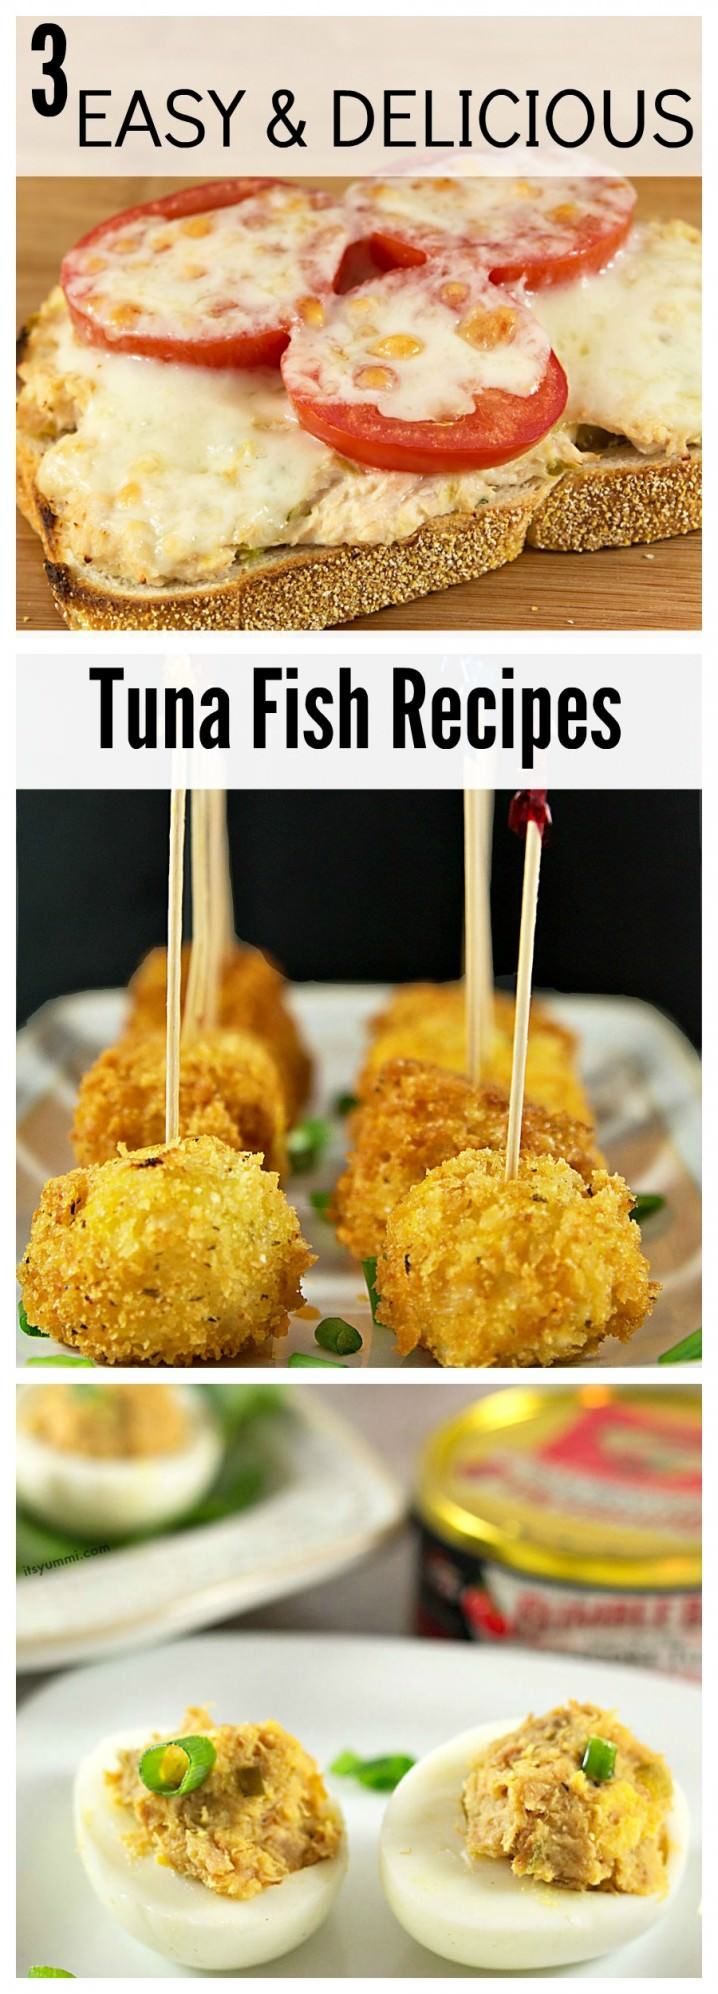 3 Easy Tuna Recipes - 2 appetizers and a 1 healthy paleo lunch recipe!